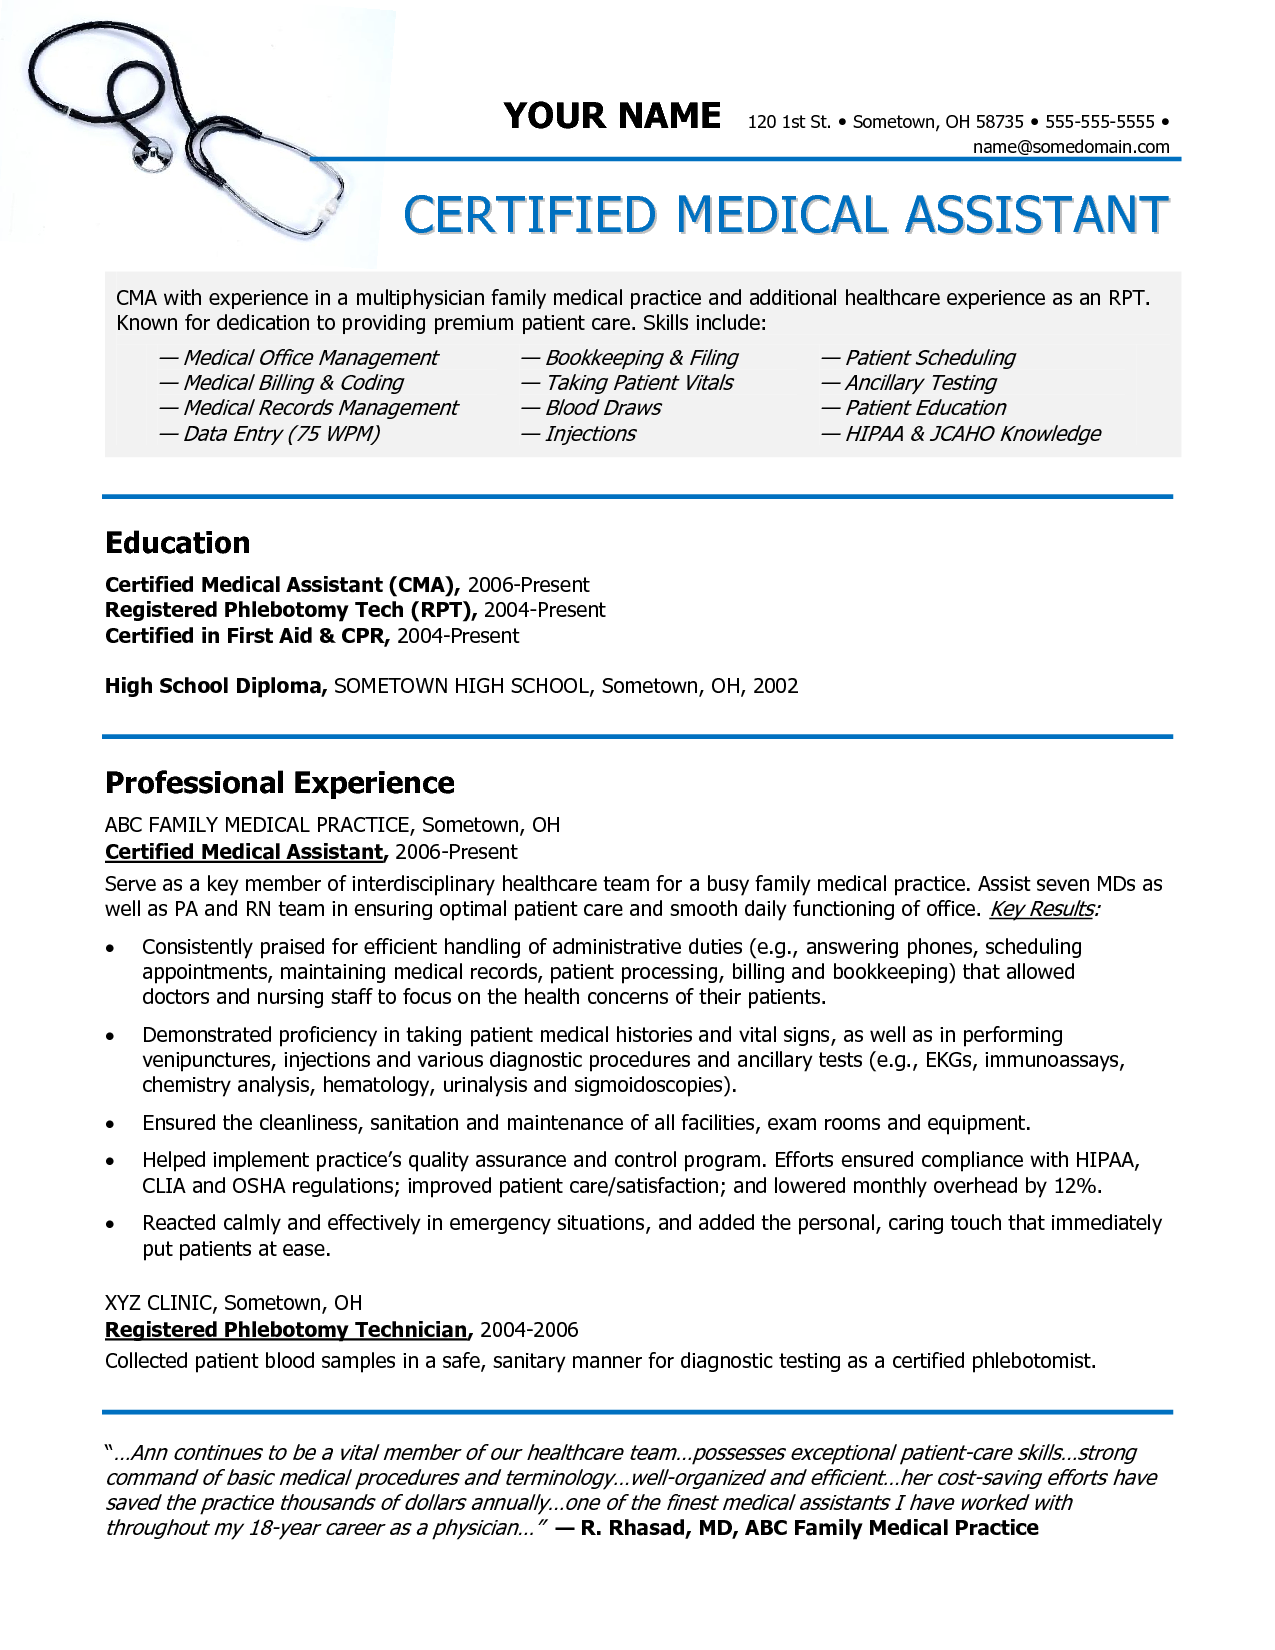 Objective For Resume Medical Assistant Medical Assistant Resume Sample,  Medical Resume Templates 14 Medical Assistant Resume Uxhandycom, Medical  Assistant ...  Certification On Resume Example